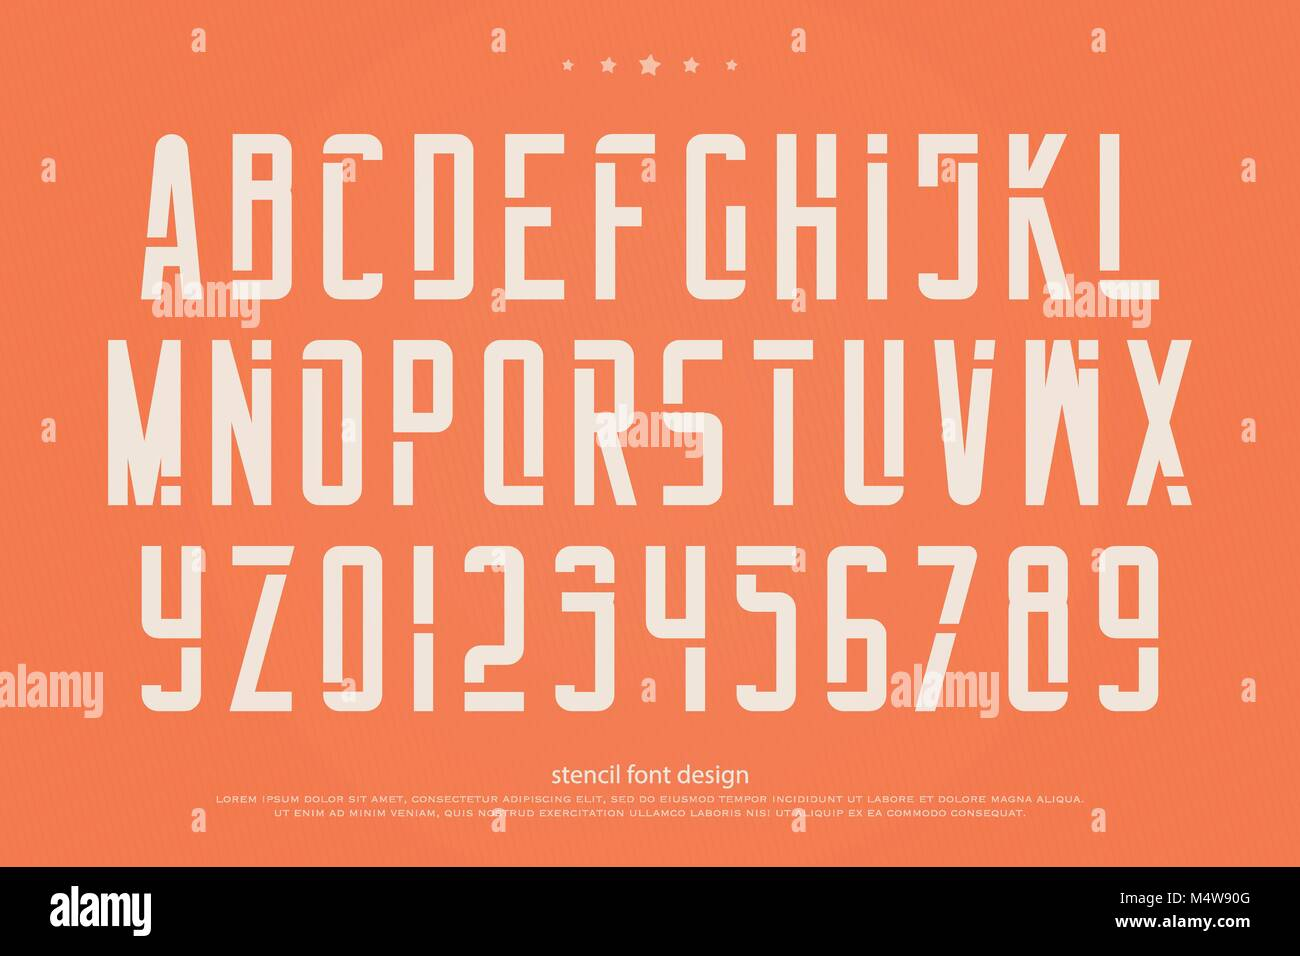 stencil alphabet letters and numbers  vector, geometric font type